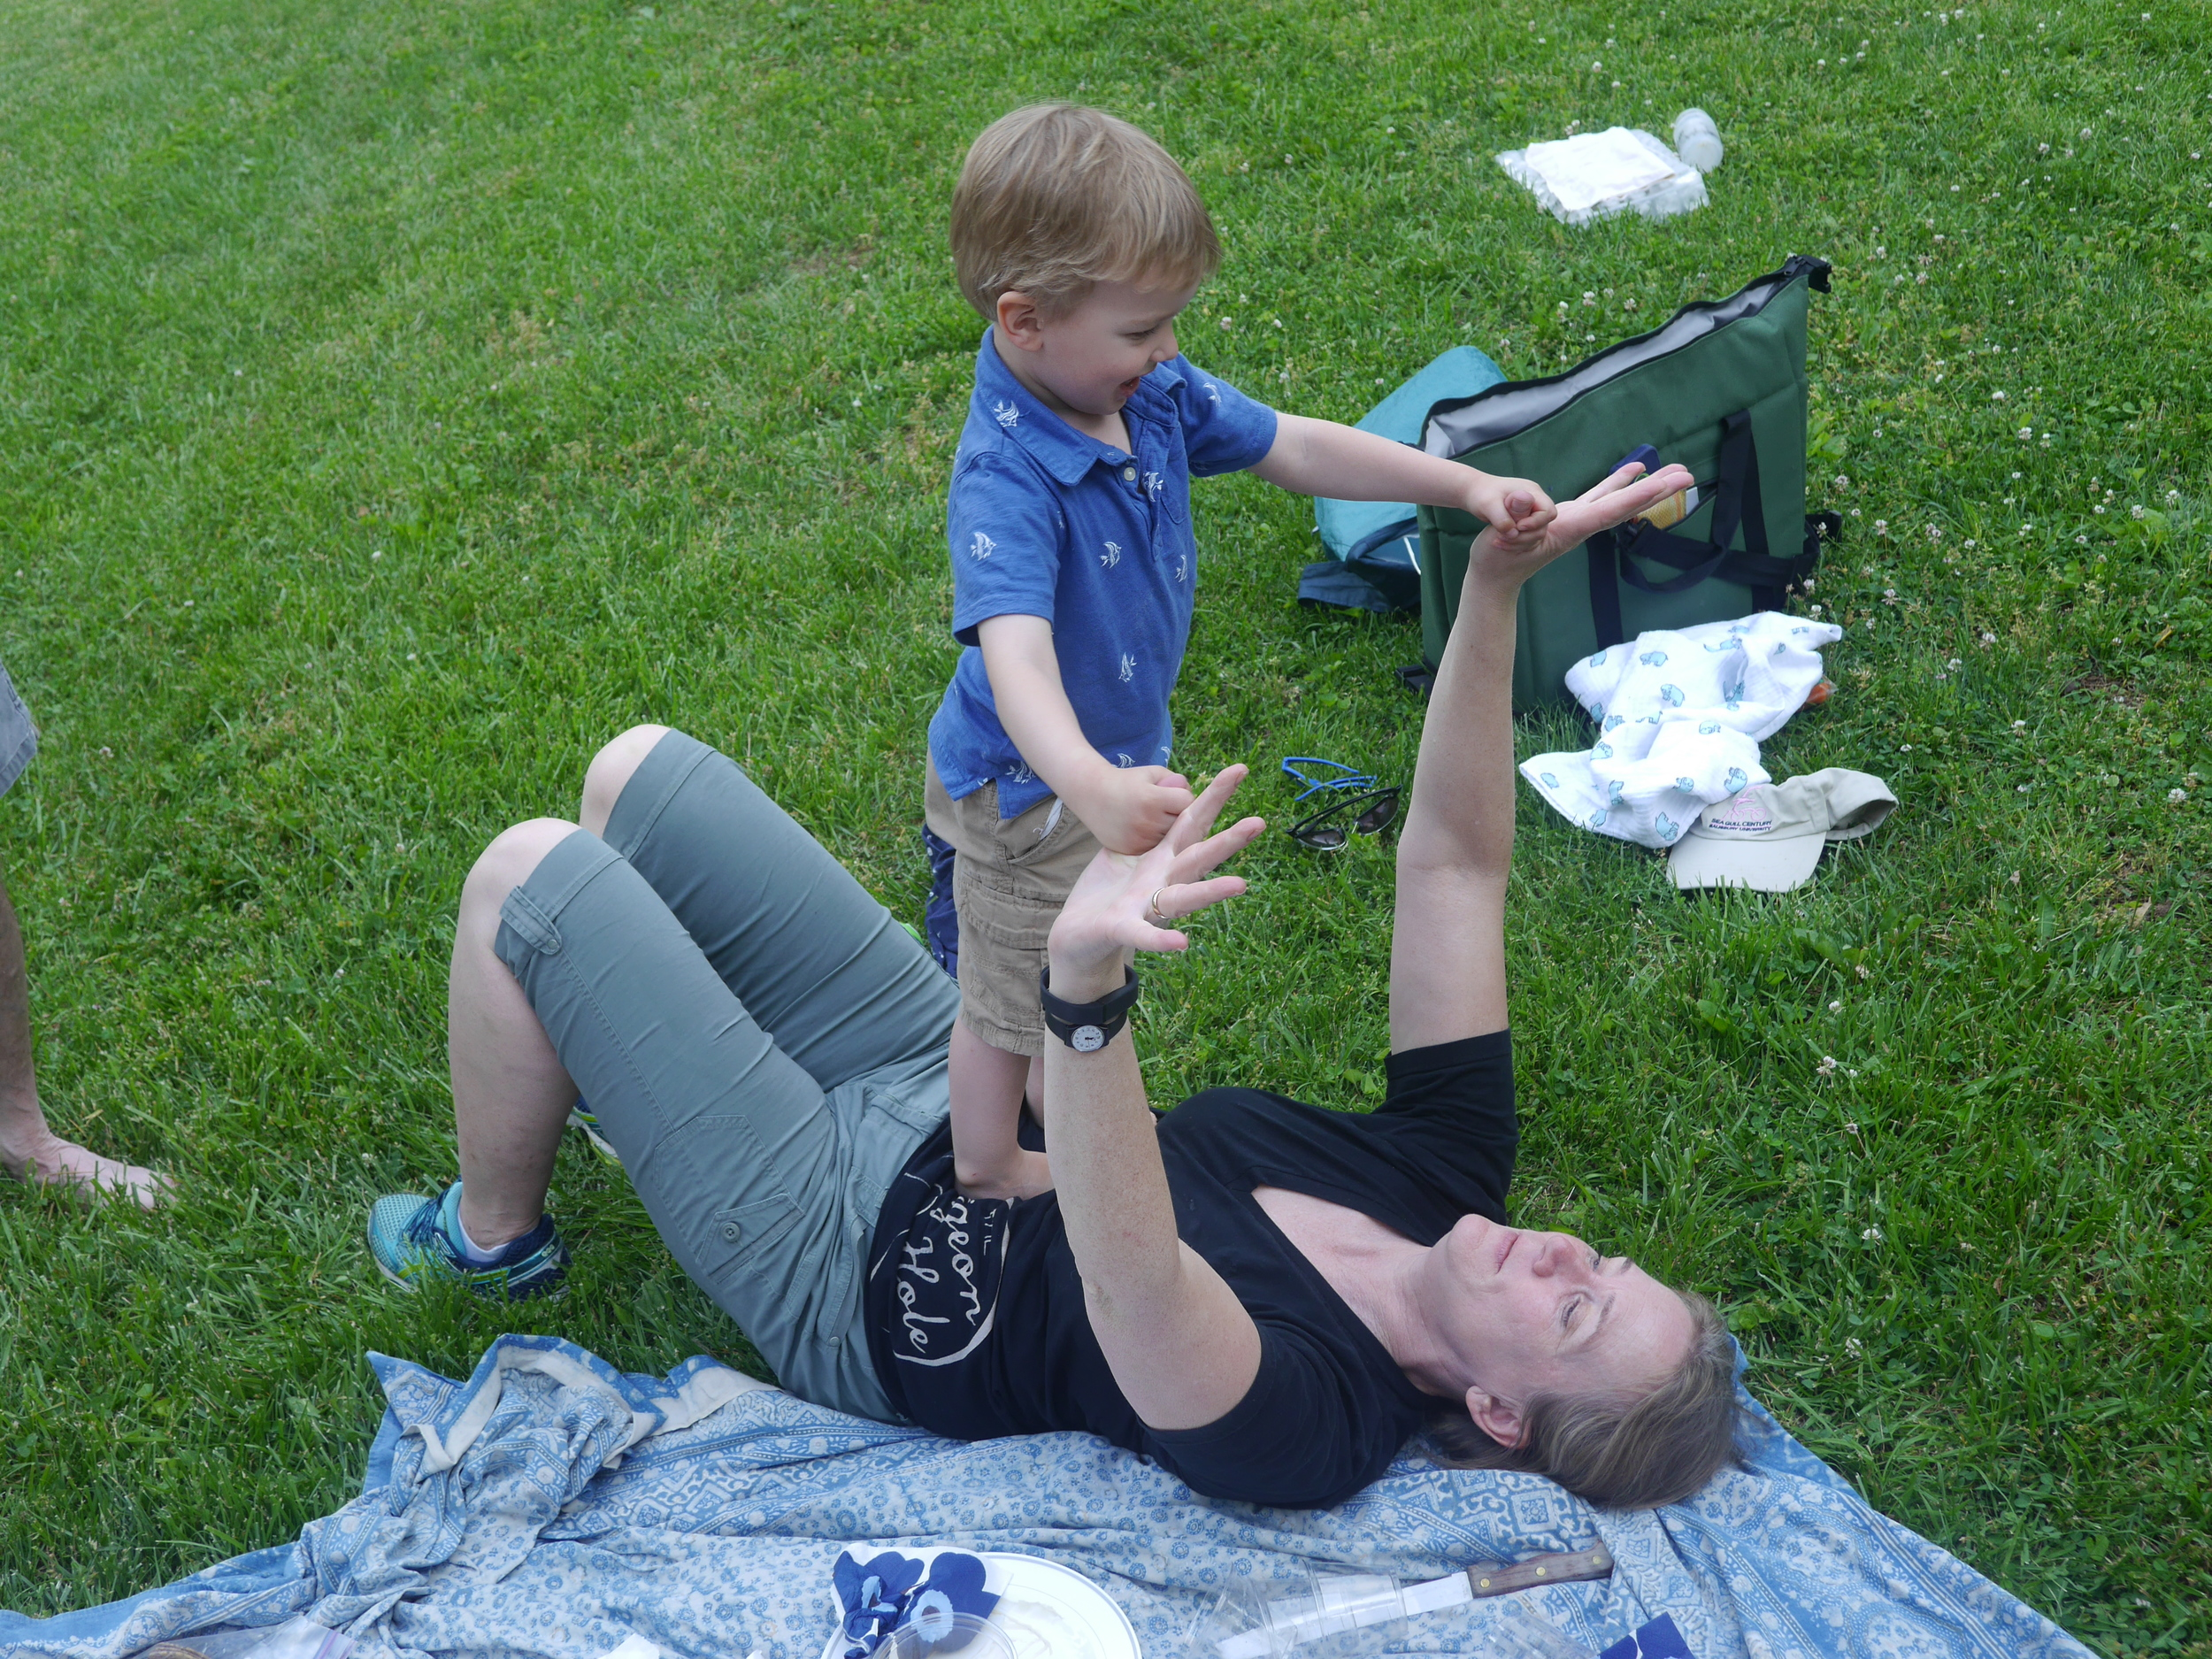 Sebastian gets a chance to play with mom.